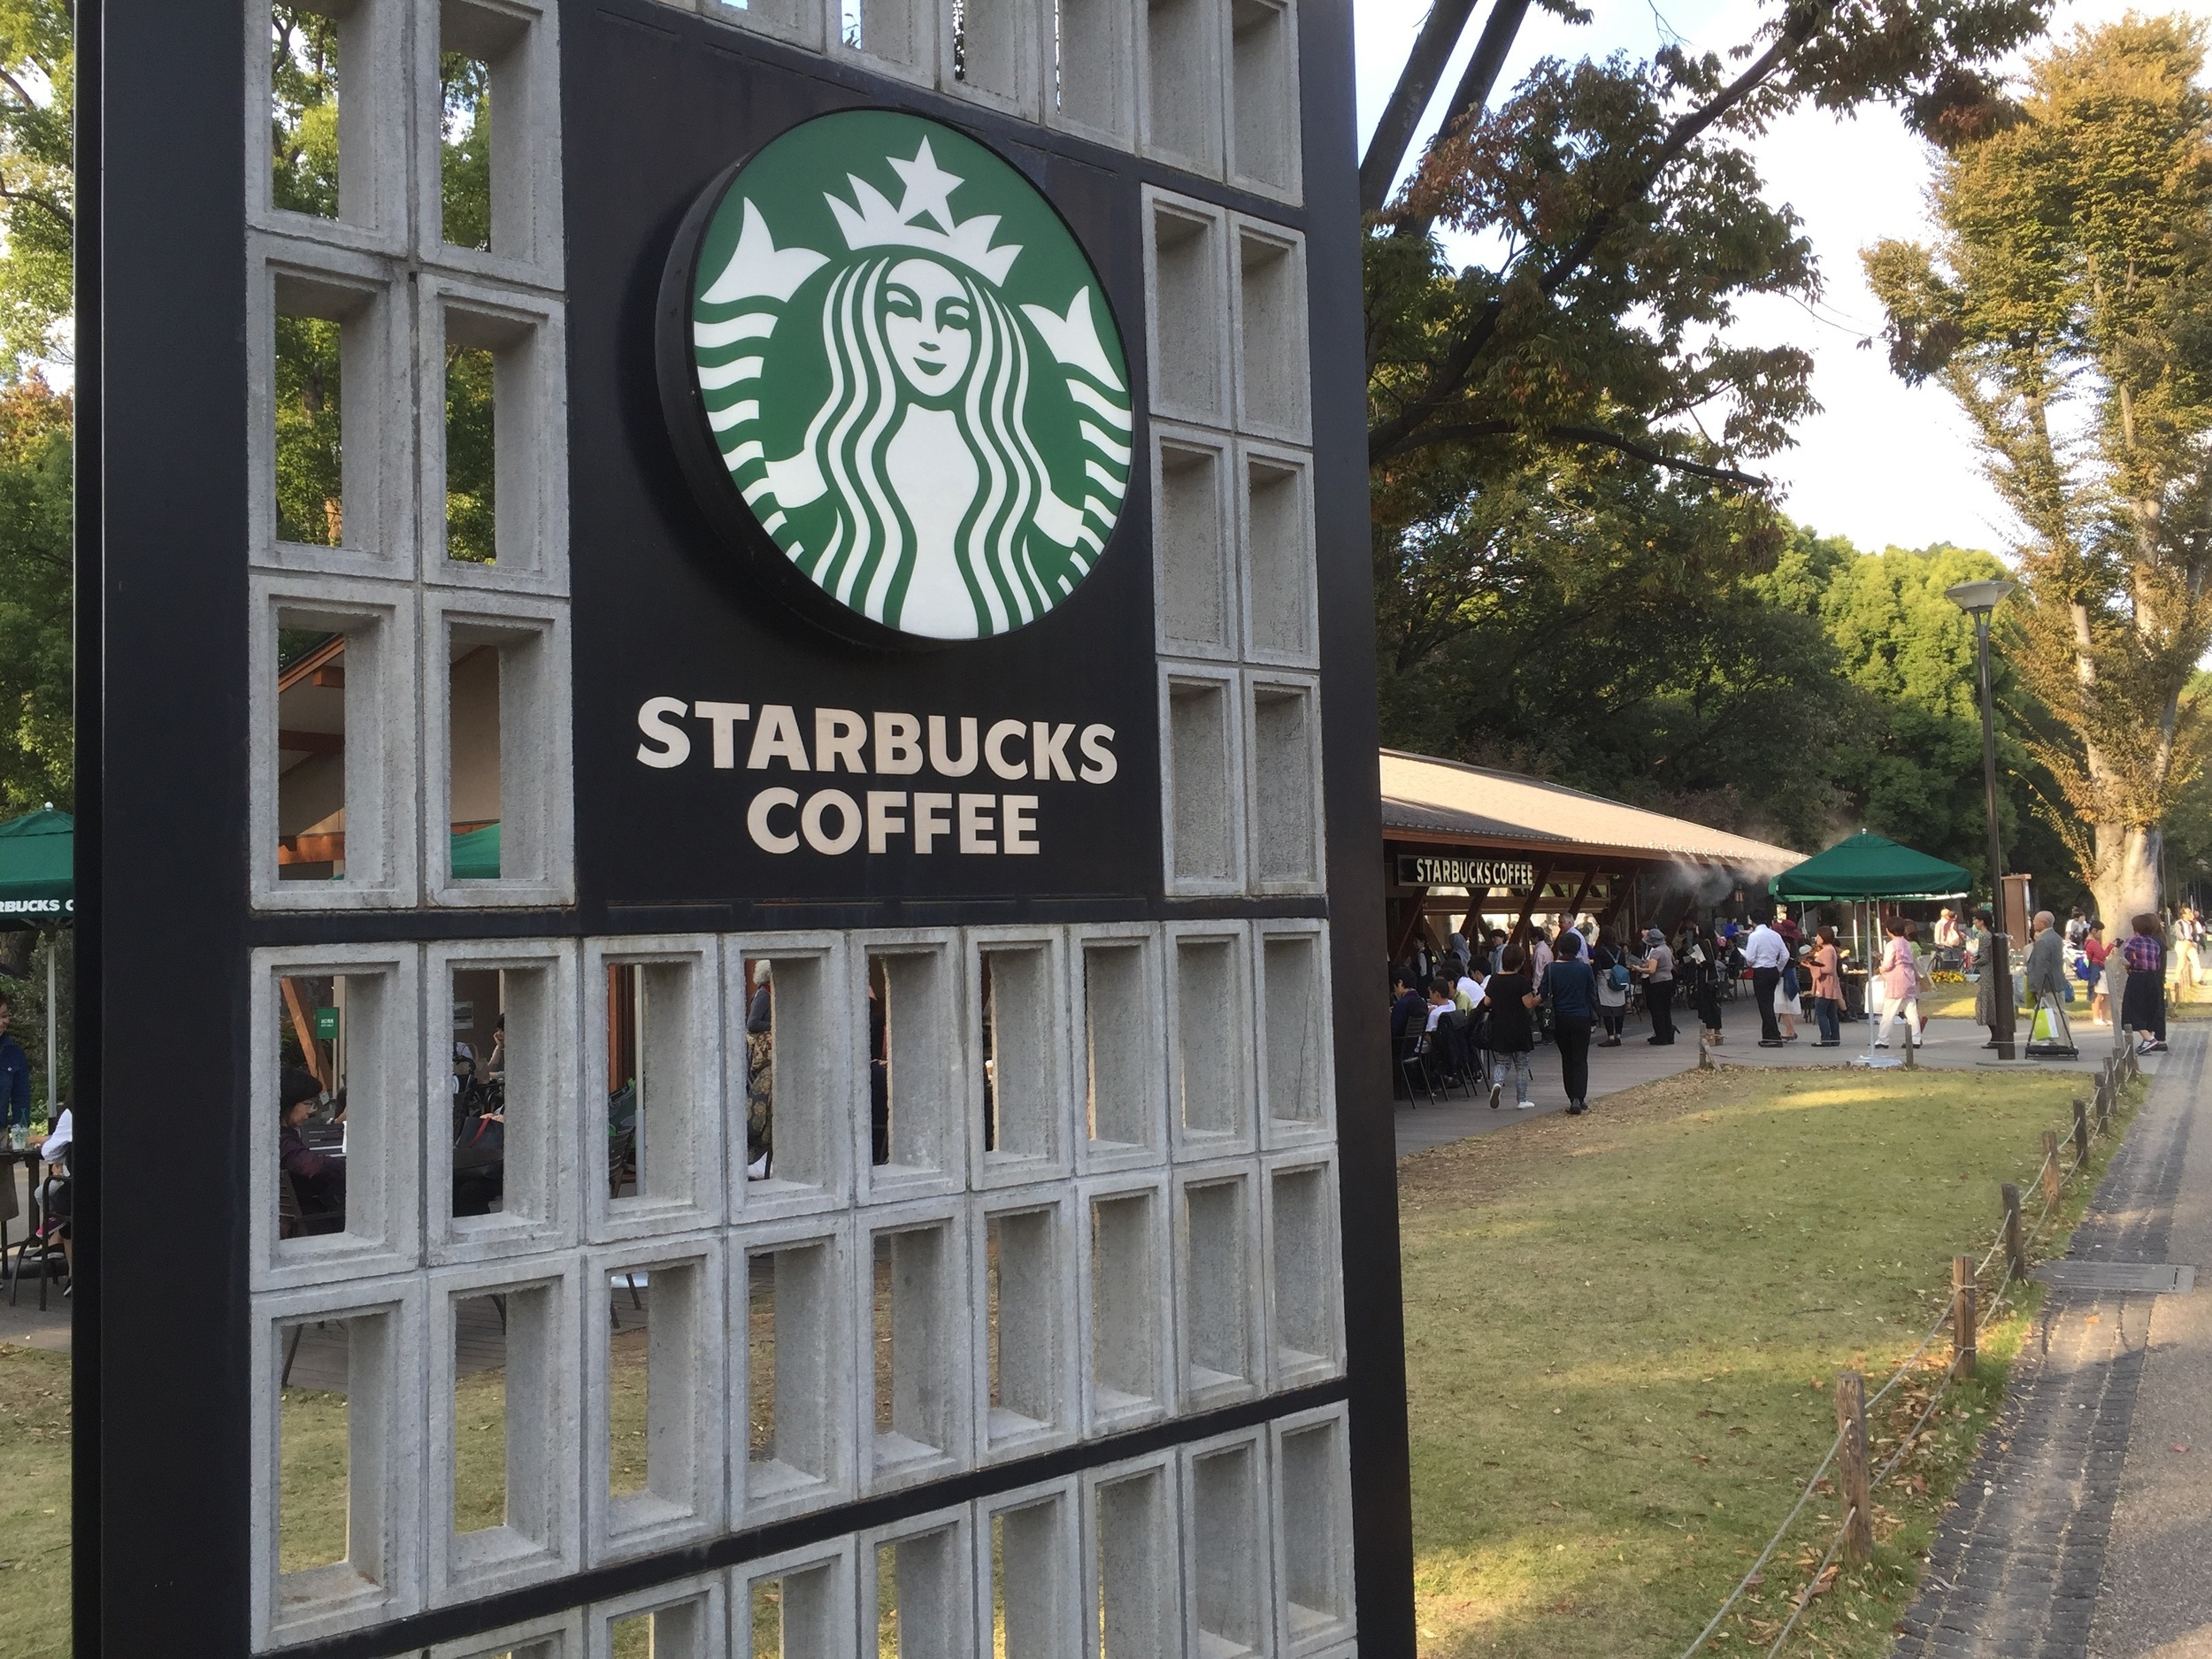 Ueno Zoo Starbucks